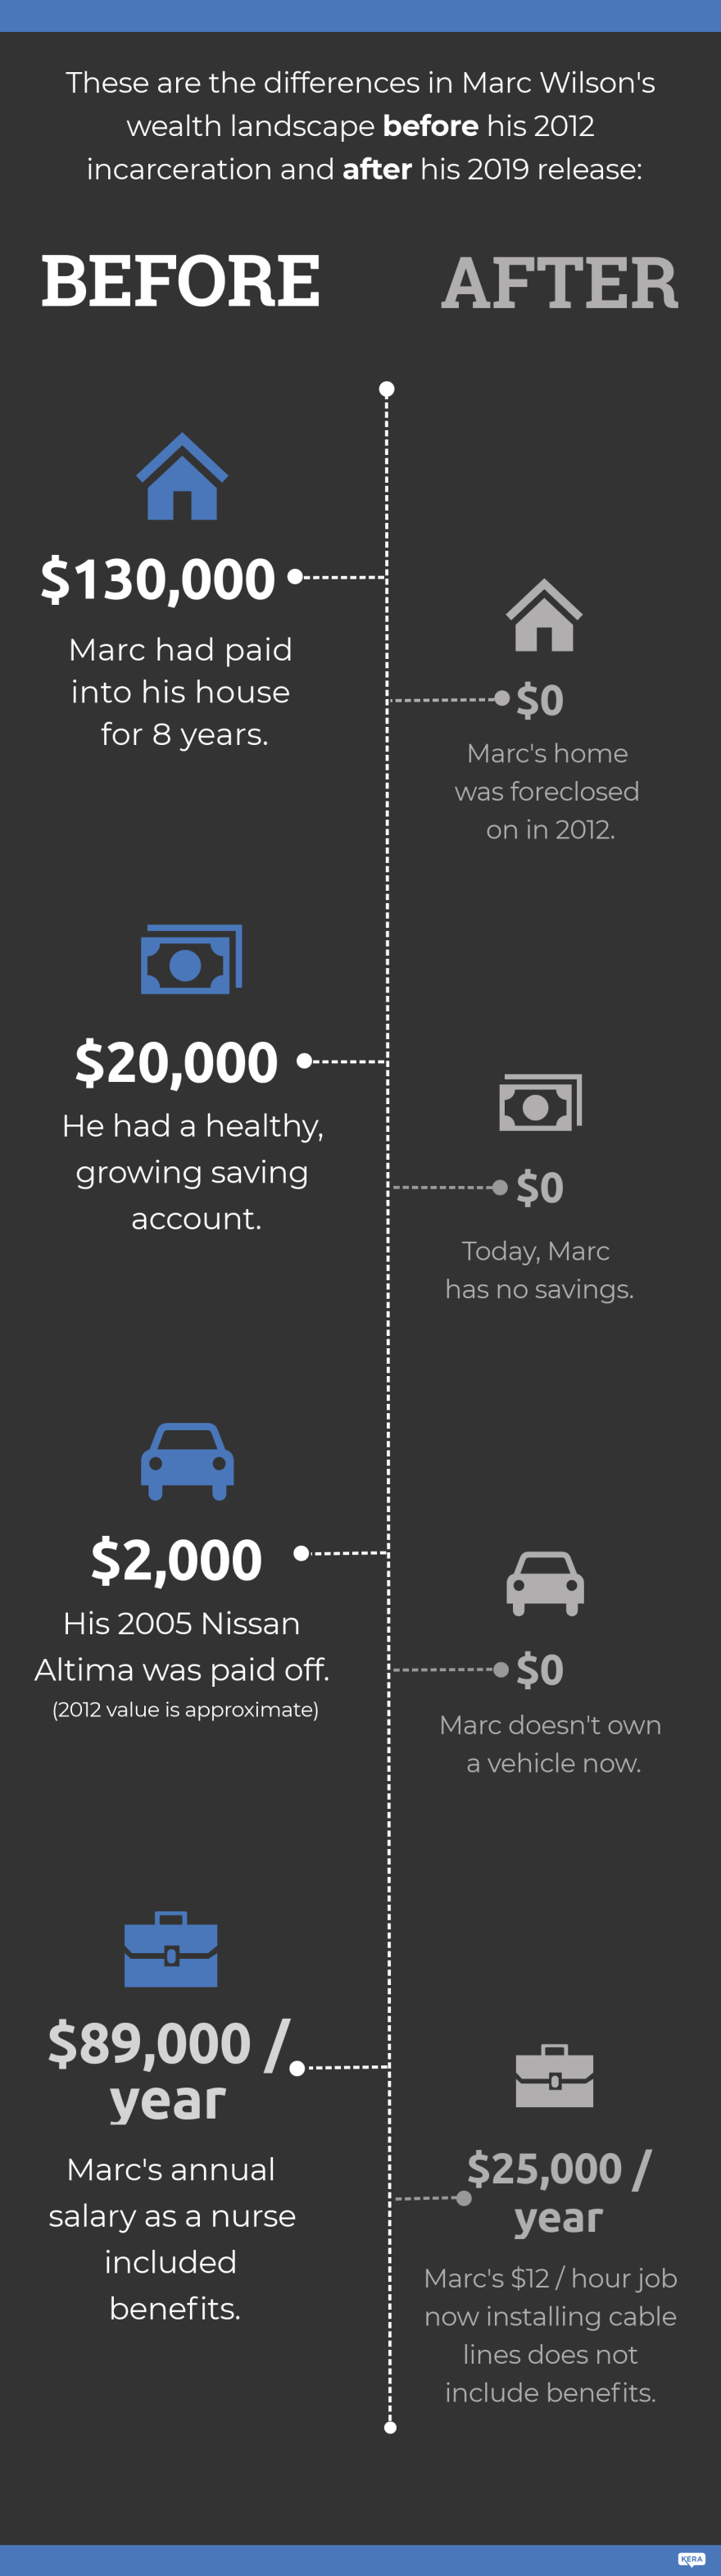 These are the differences in Marc Wilson's wealth landscape before his 2012 incarceration and after his 2019 release: